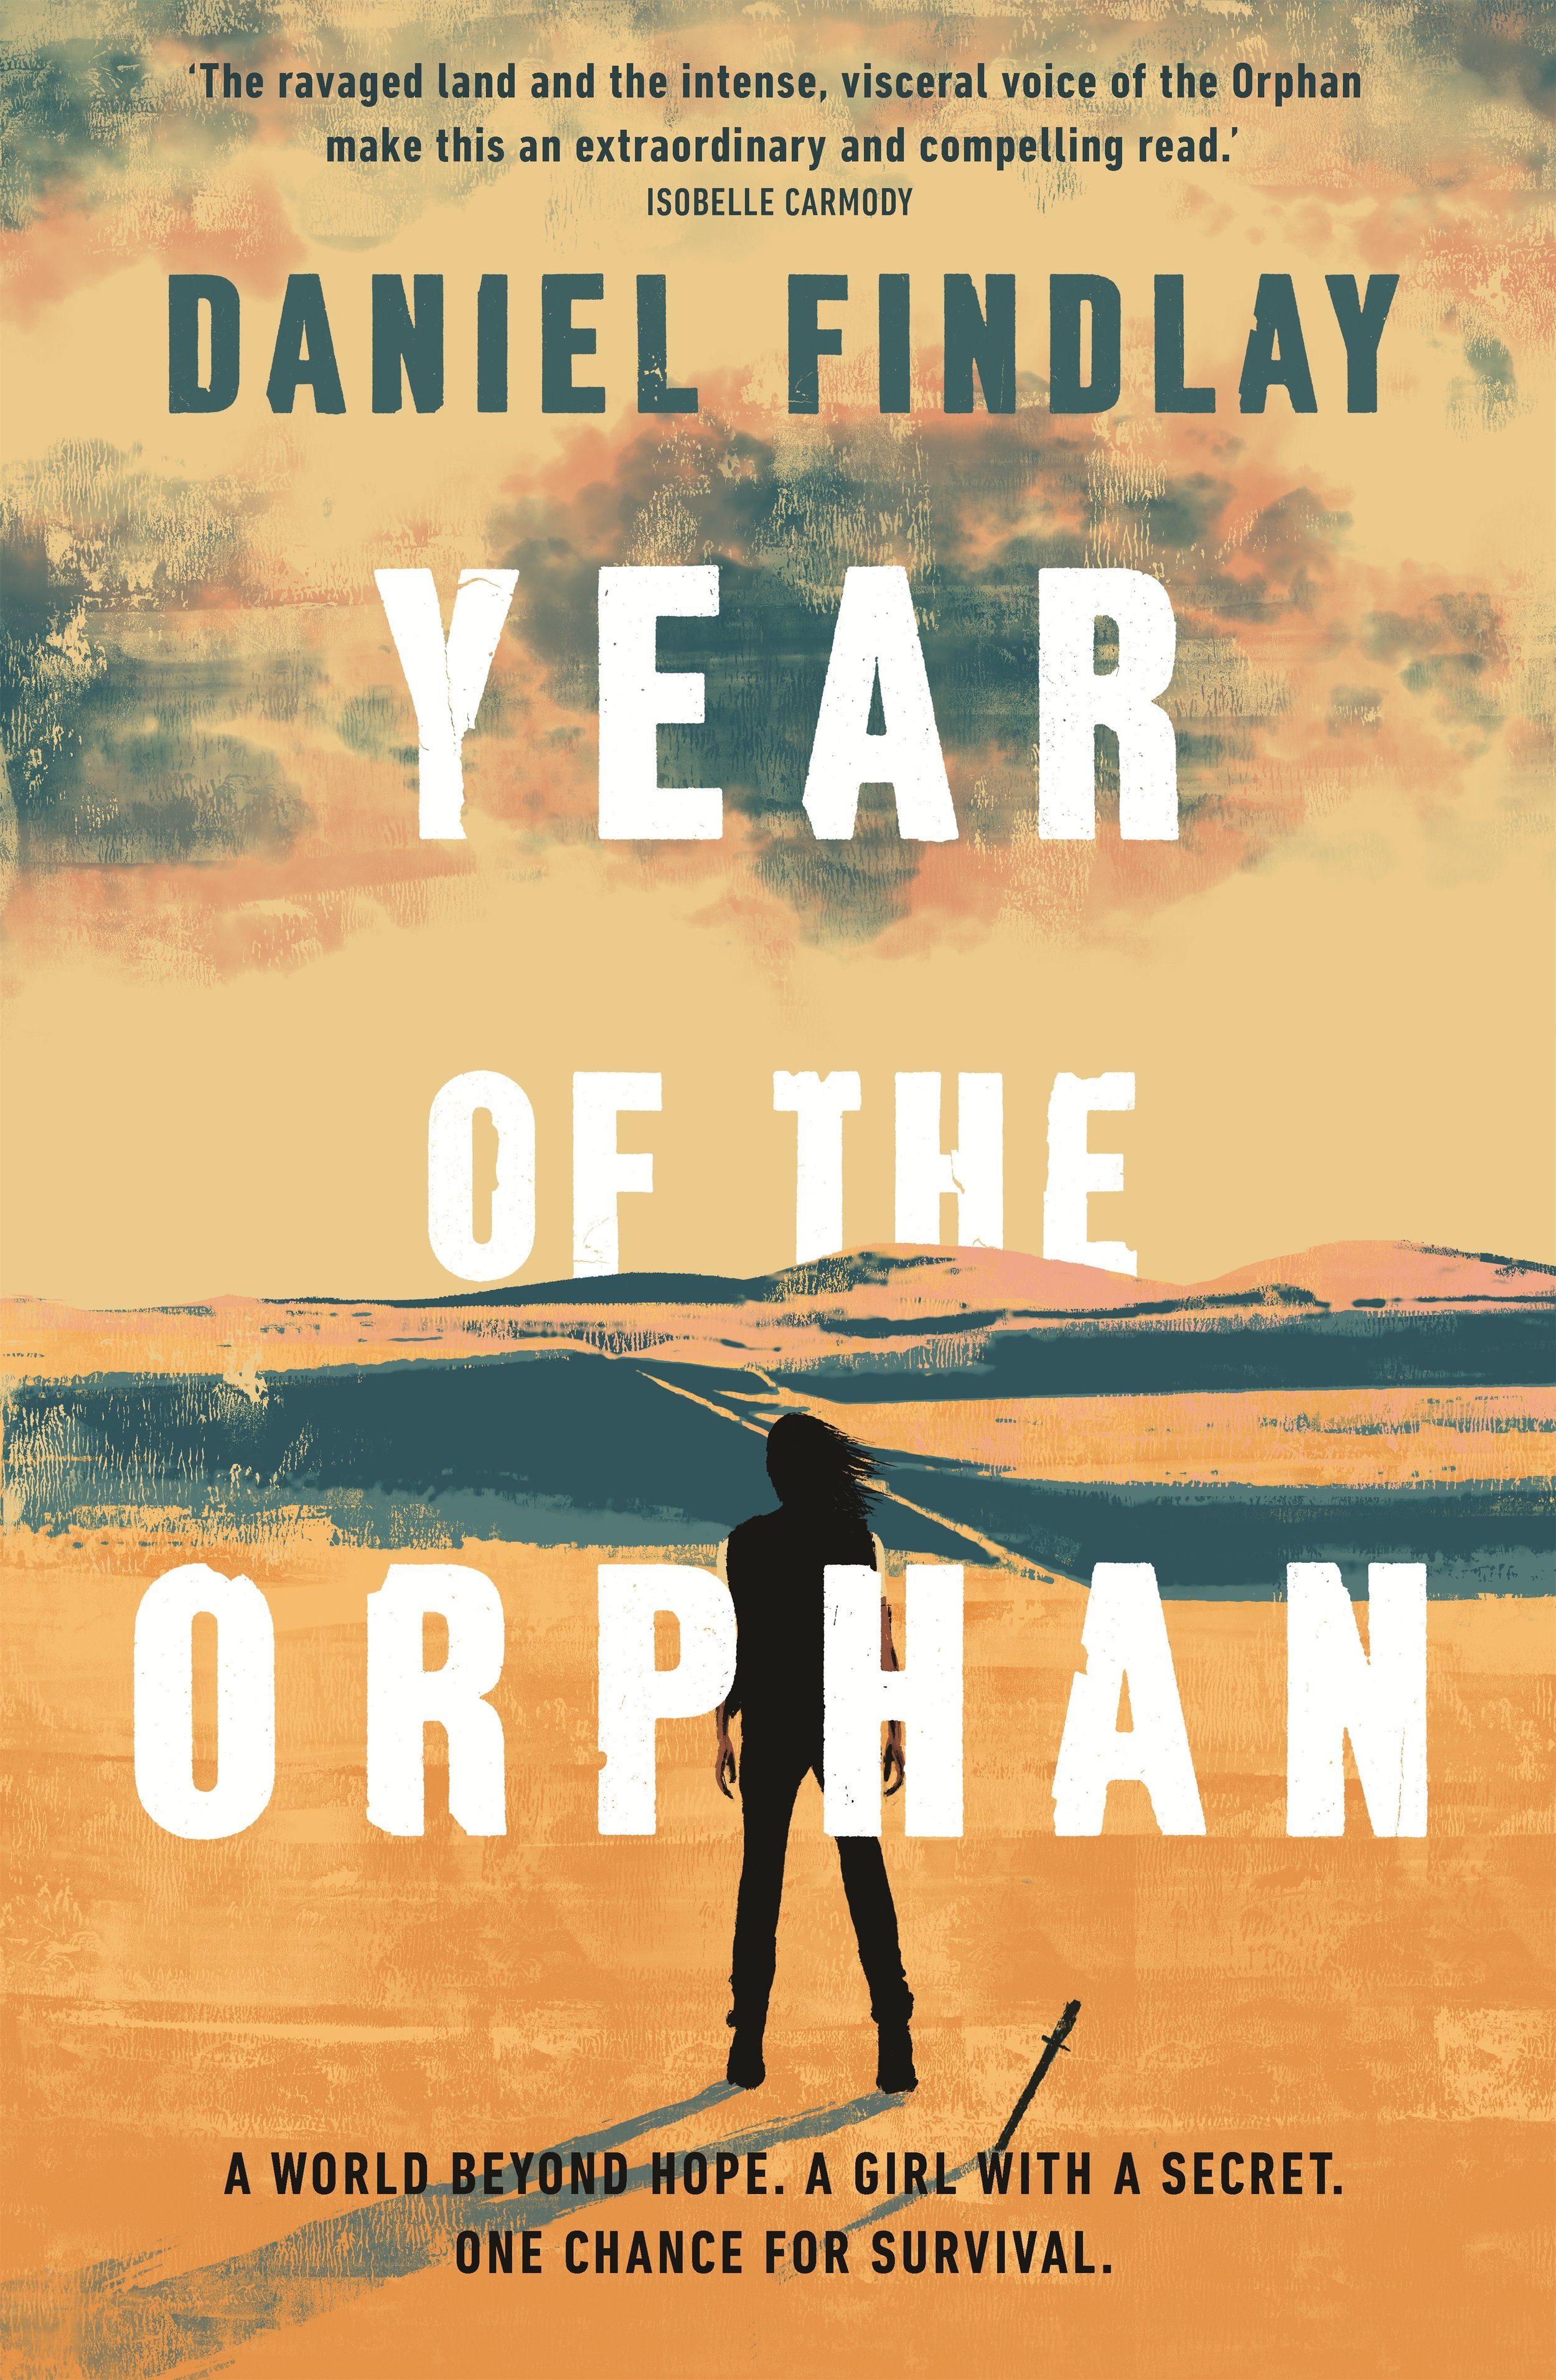 Year of the Orphan - Outback Australia. Hundreds of years from now. After the end. A girl races across the desert pursued by the reckoner, scavenged spoils held close. In a blasted landscape of abandoned mines and the crumbling bones of civilisation, she survives by picking over the dead past. She trades her scraps at the only known settlement, a ramshackle fortress of greed, corruption and disease. An outpost whose only purpose is survival – refuge from the creatures that hunt beyond.Sold then raised hard in the System, the Orphan has a mission, carries secrets about the destruction that brought the world to its knees. And she's about to discover that the past still holds power over the present.Given an impossible choice, will the Orphan save the only home she knows or see it returned to dust? Both paths lead to blood, but whose will be spilled?In a post-apocalyptic future, survivors scavenge in the harsh Australian outback. Living rough in the remnants of our ruined world, an orphan with her own brutal past must decide if what's left of humanity is worth saving.